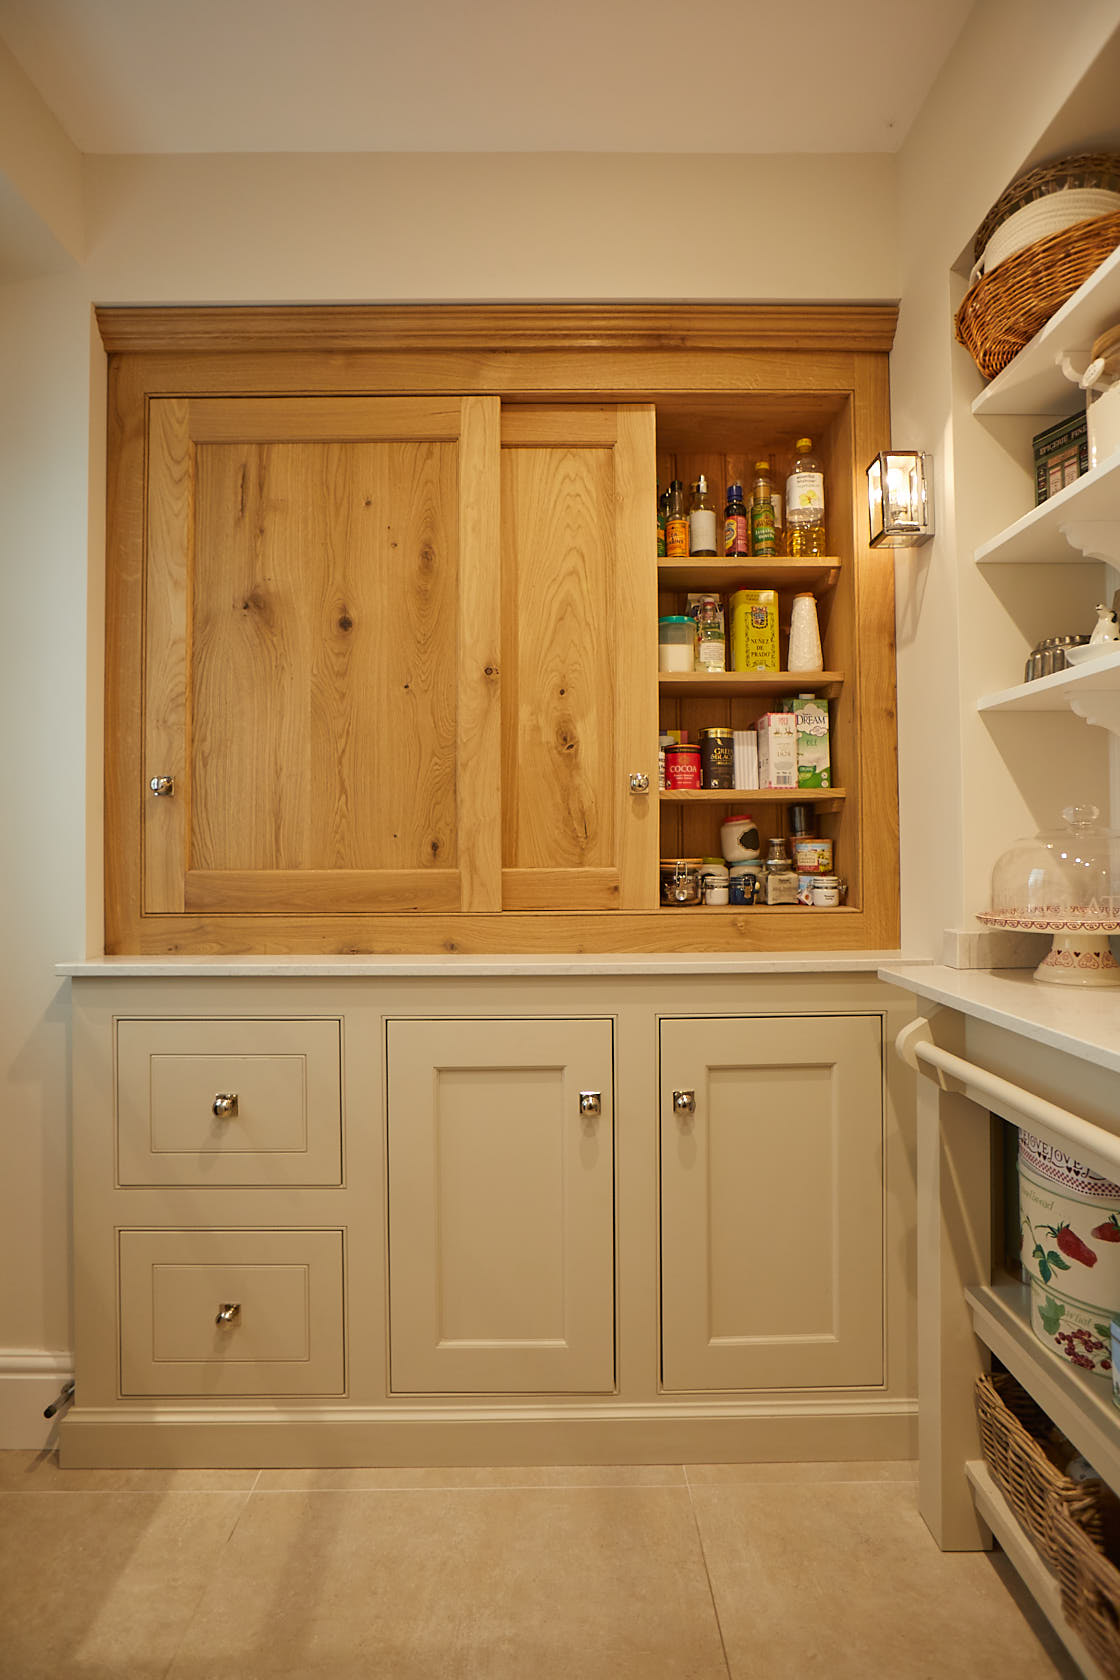 Sliding oak shaker doors in pantry with painted cream base cabinets